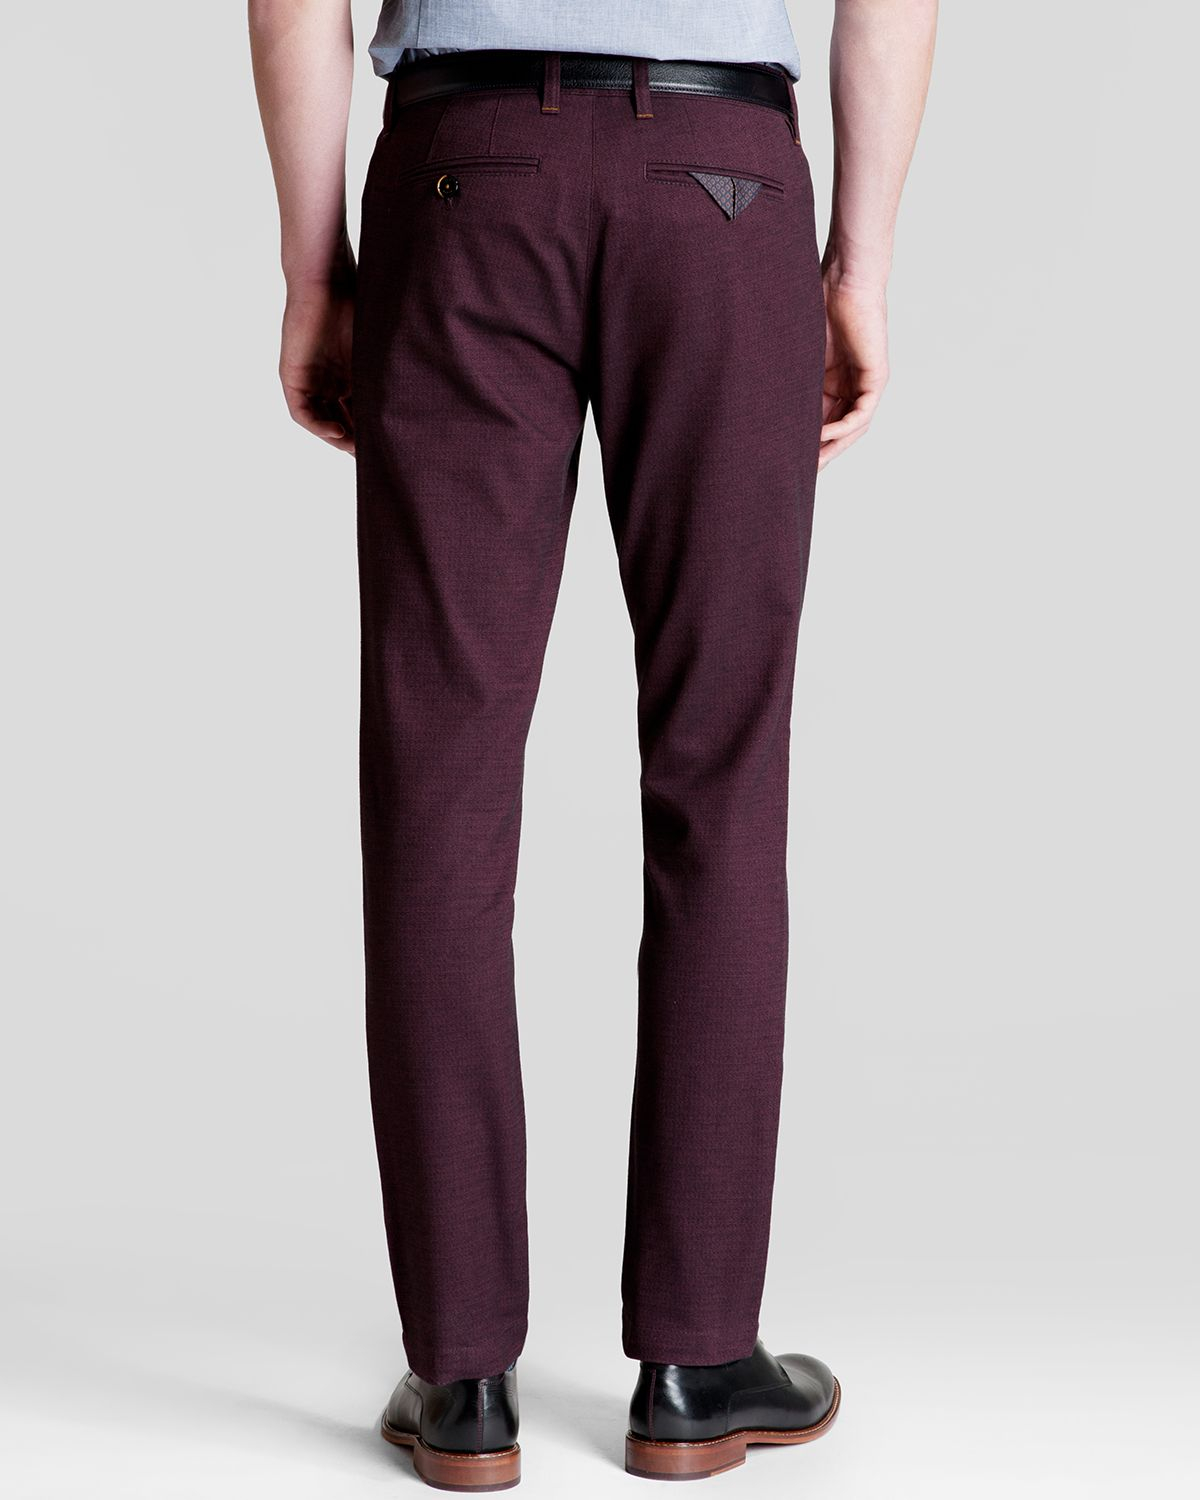 f13b28175 Lyst - Ted Baker Ketrikn Chino Pants - Slim Fit in Red for Men